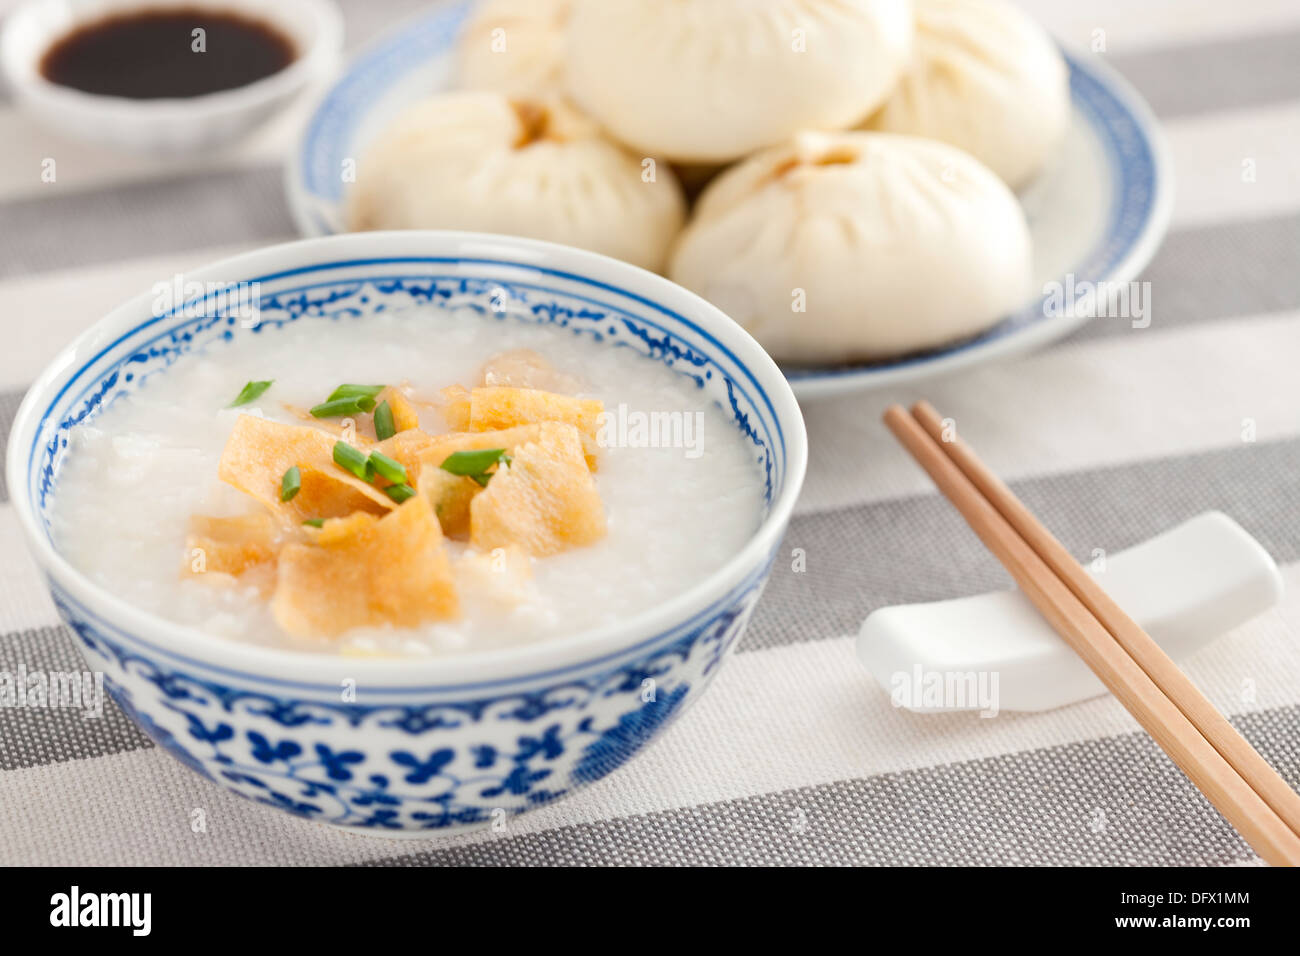 Chinese Food Rice Porridge And Steamed Buns Stock Photo Alamy,Safflower Seeds In Hindi